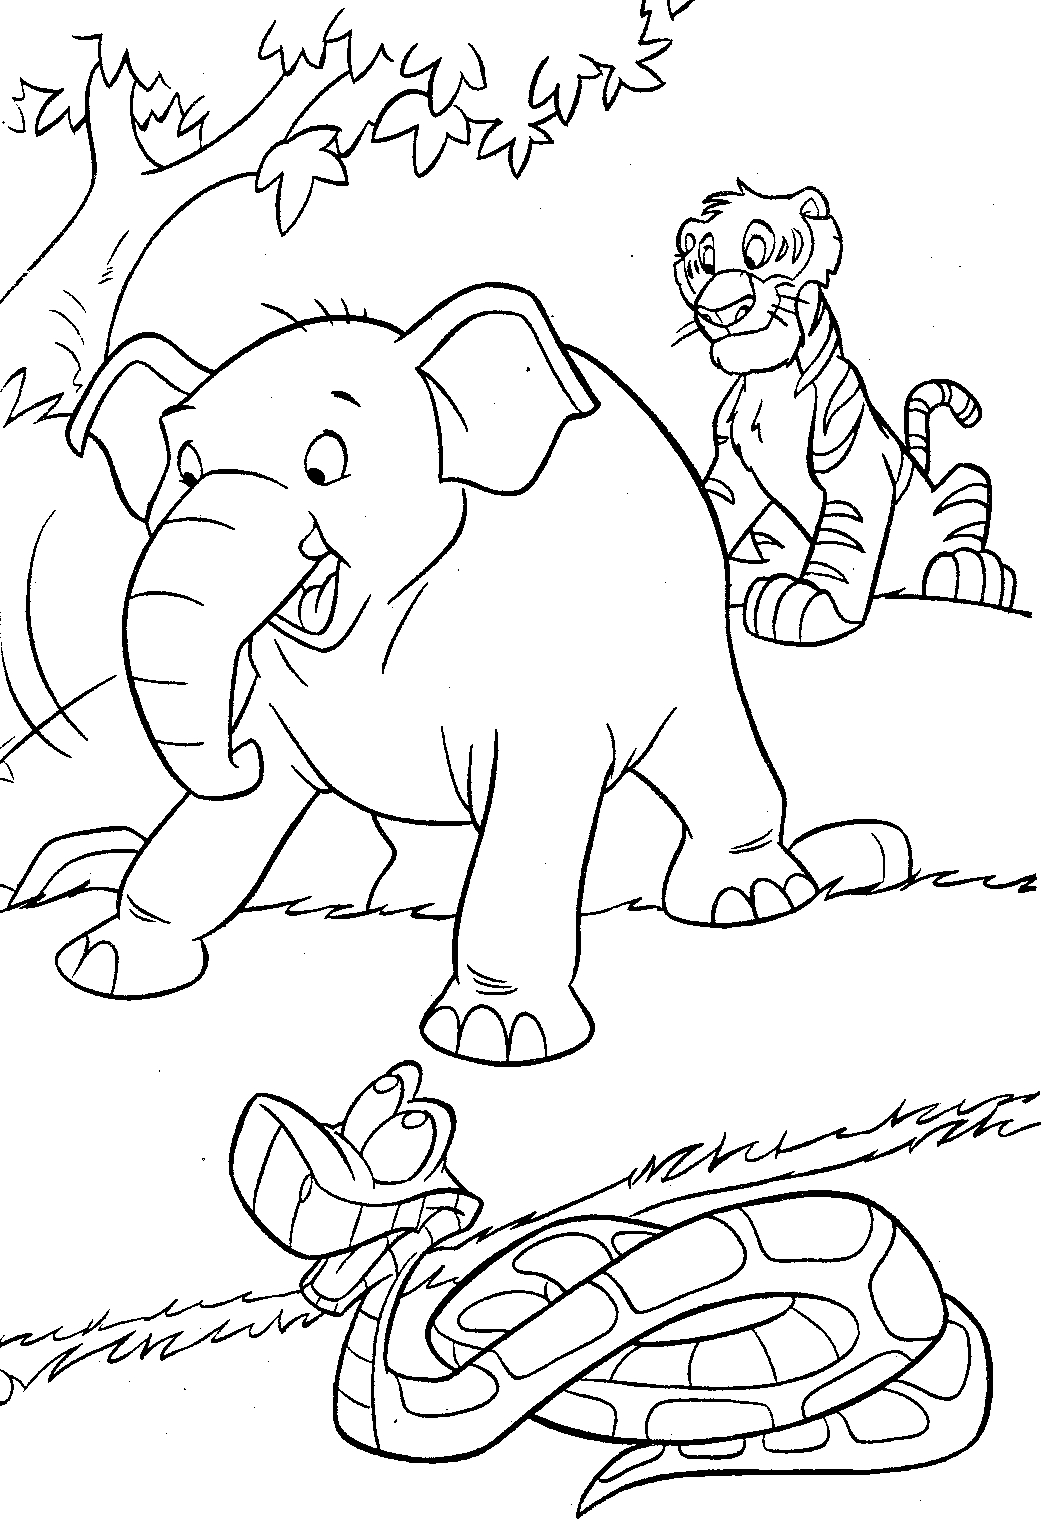 african safari animal coloring pages african safari animals coloring pages at getcoloringscom animal coloring pages african safari